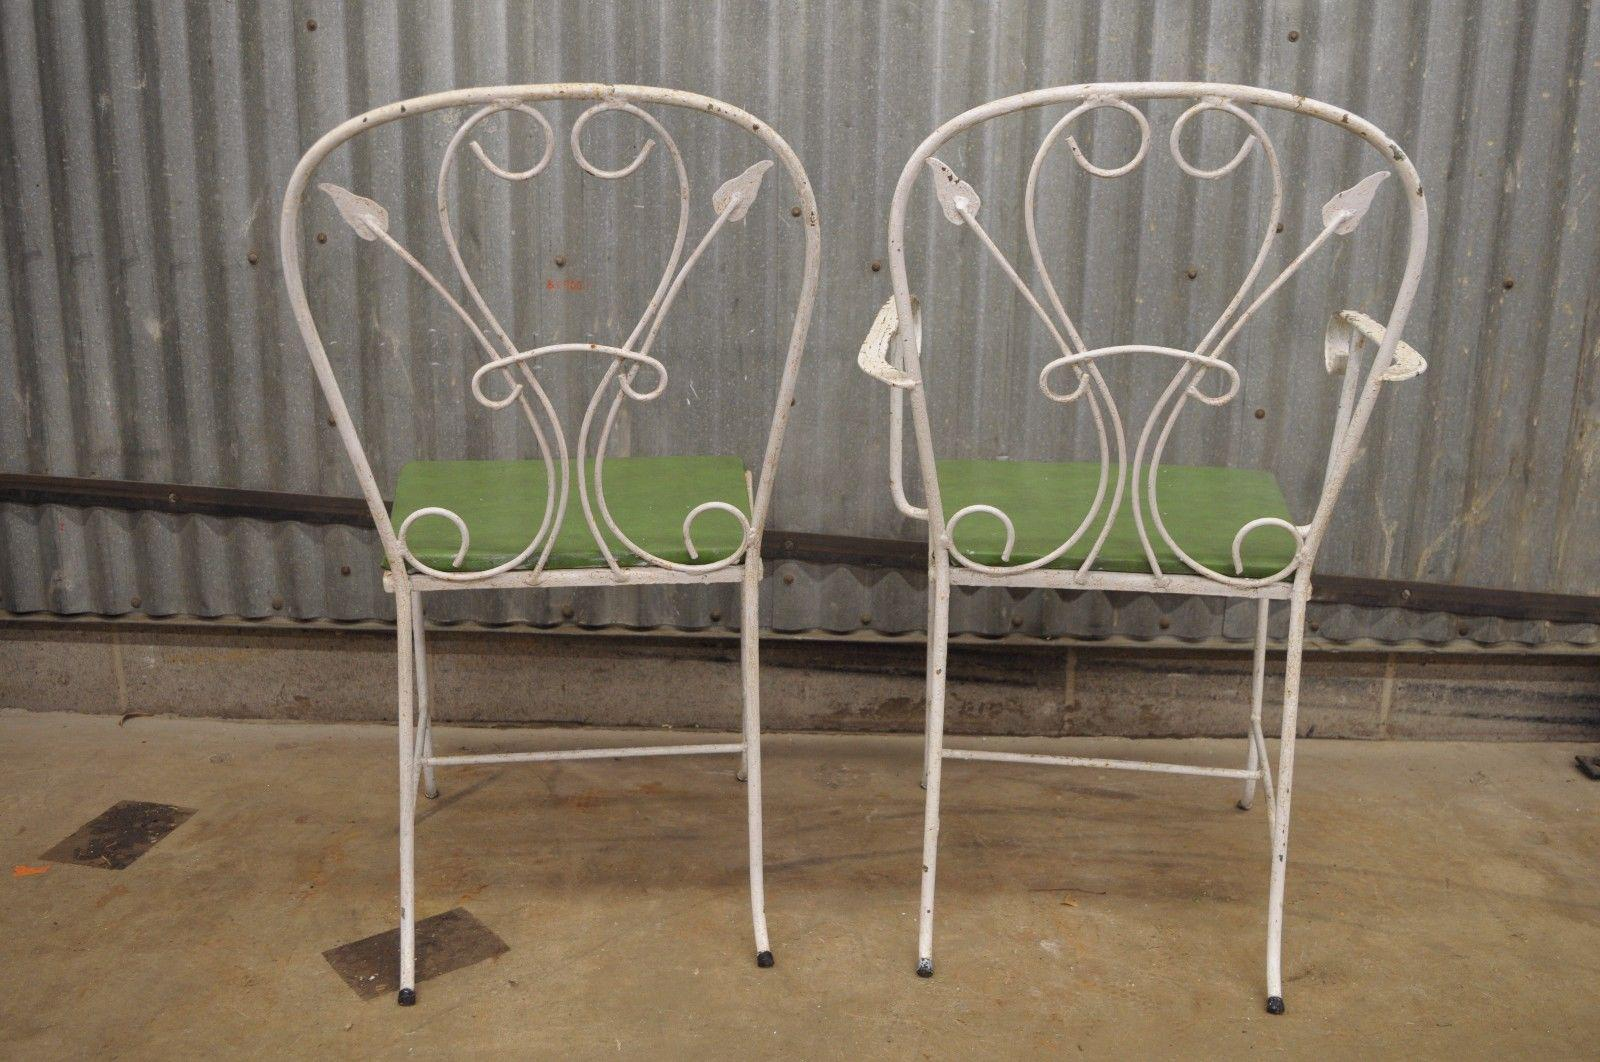 Gentil Vintage Salterini Wrought Iron Patio Dining Set Table 4 Chairs Art Nouvea  White For Sale